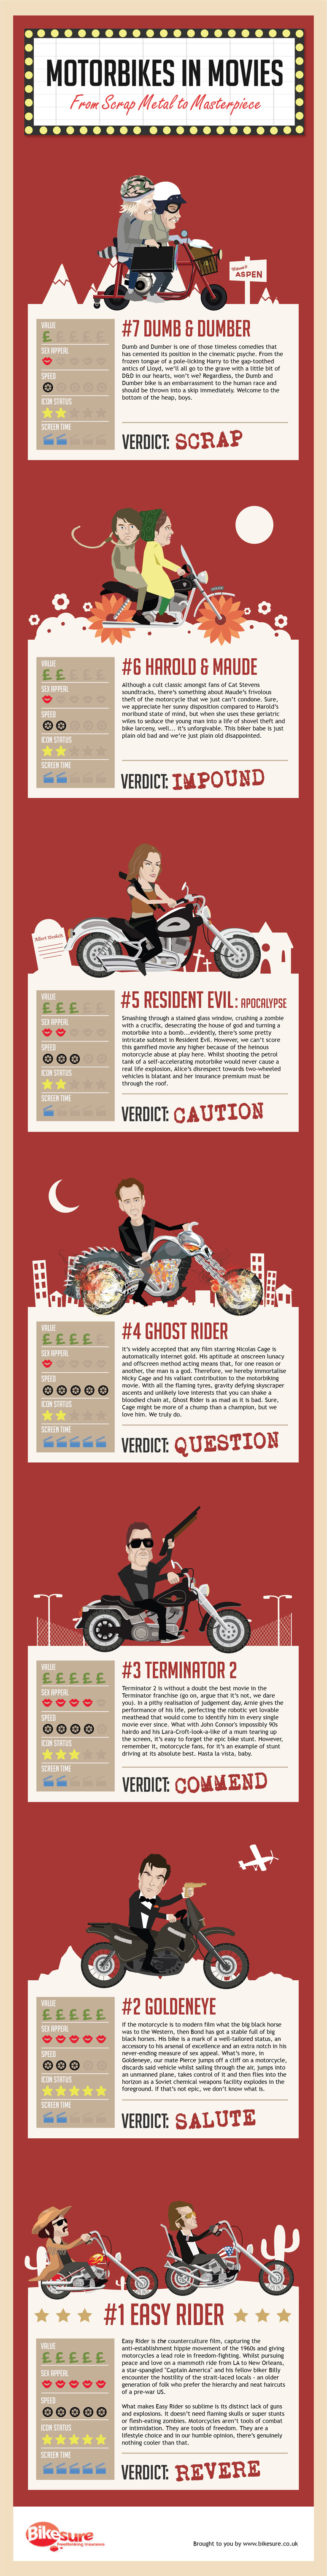 Motorbikes in Movies: From Scrap Metal to Masterpiece